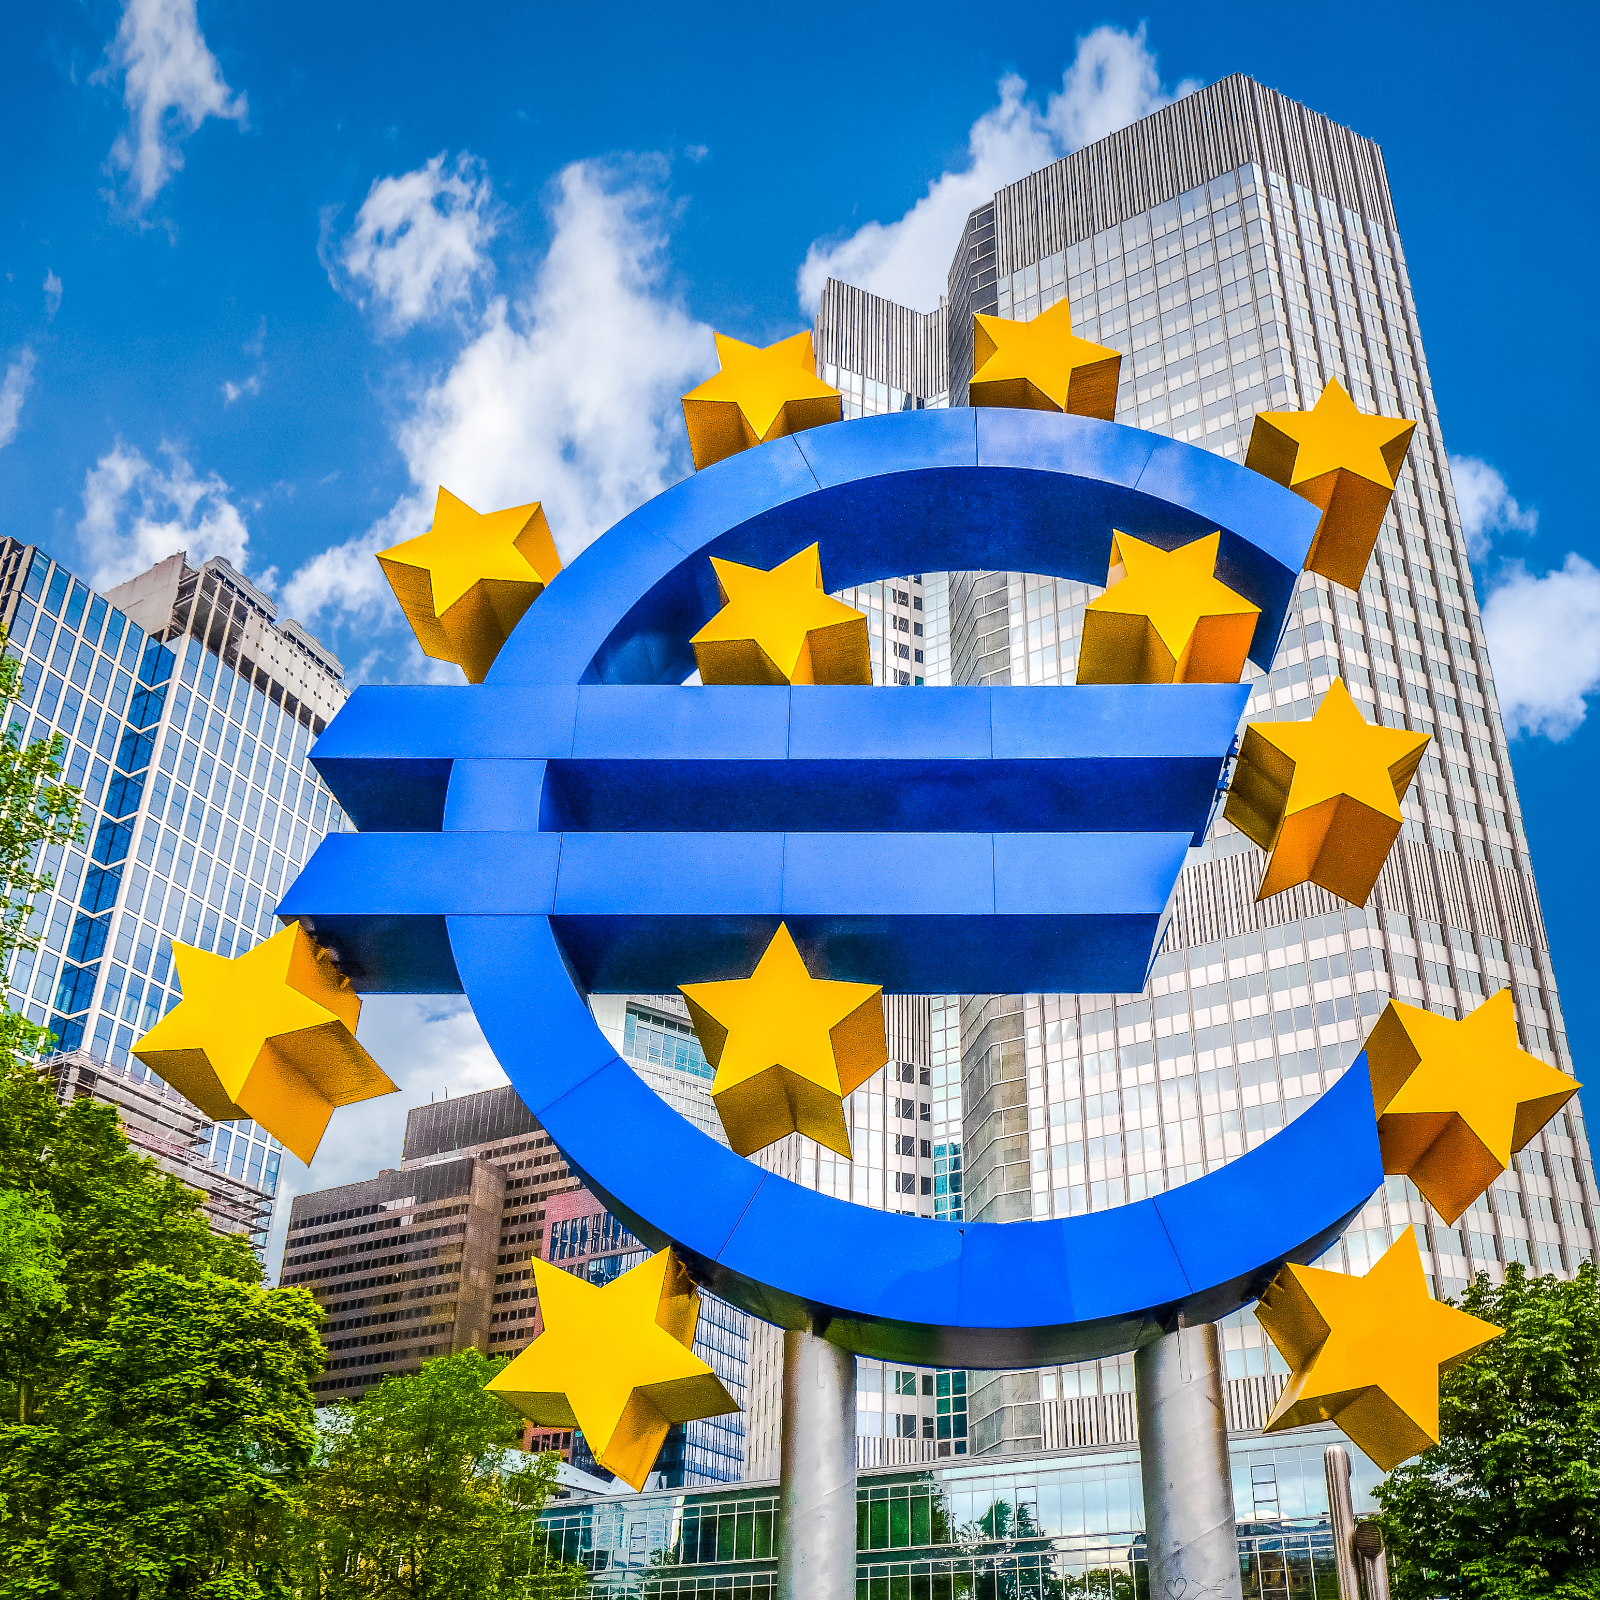 ECB President: European Central Bank Shouldn't Discourage Private Stablecoins